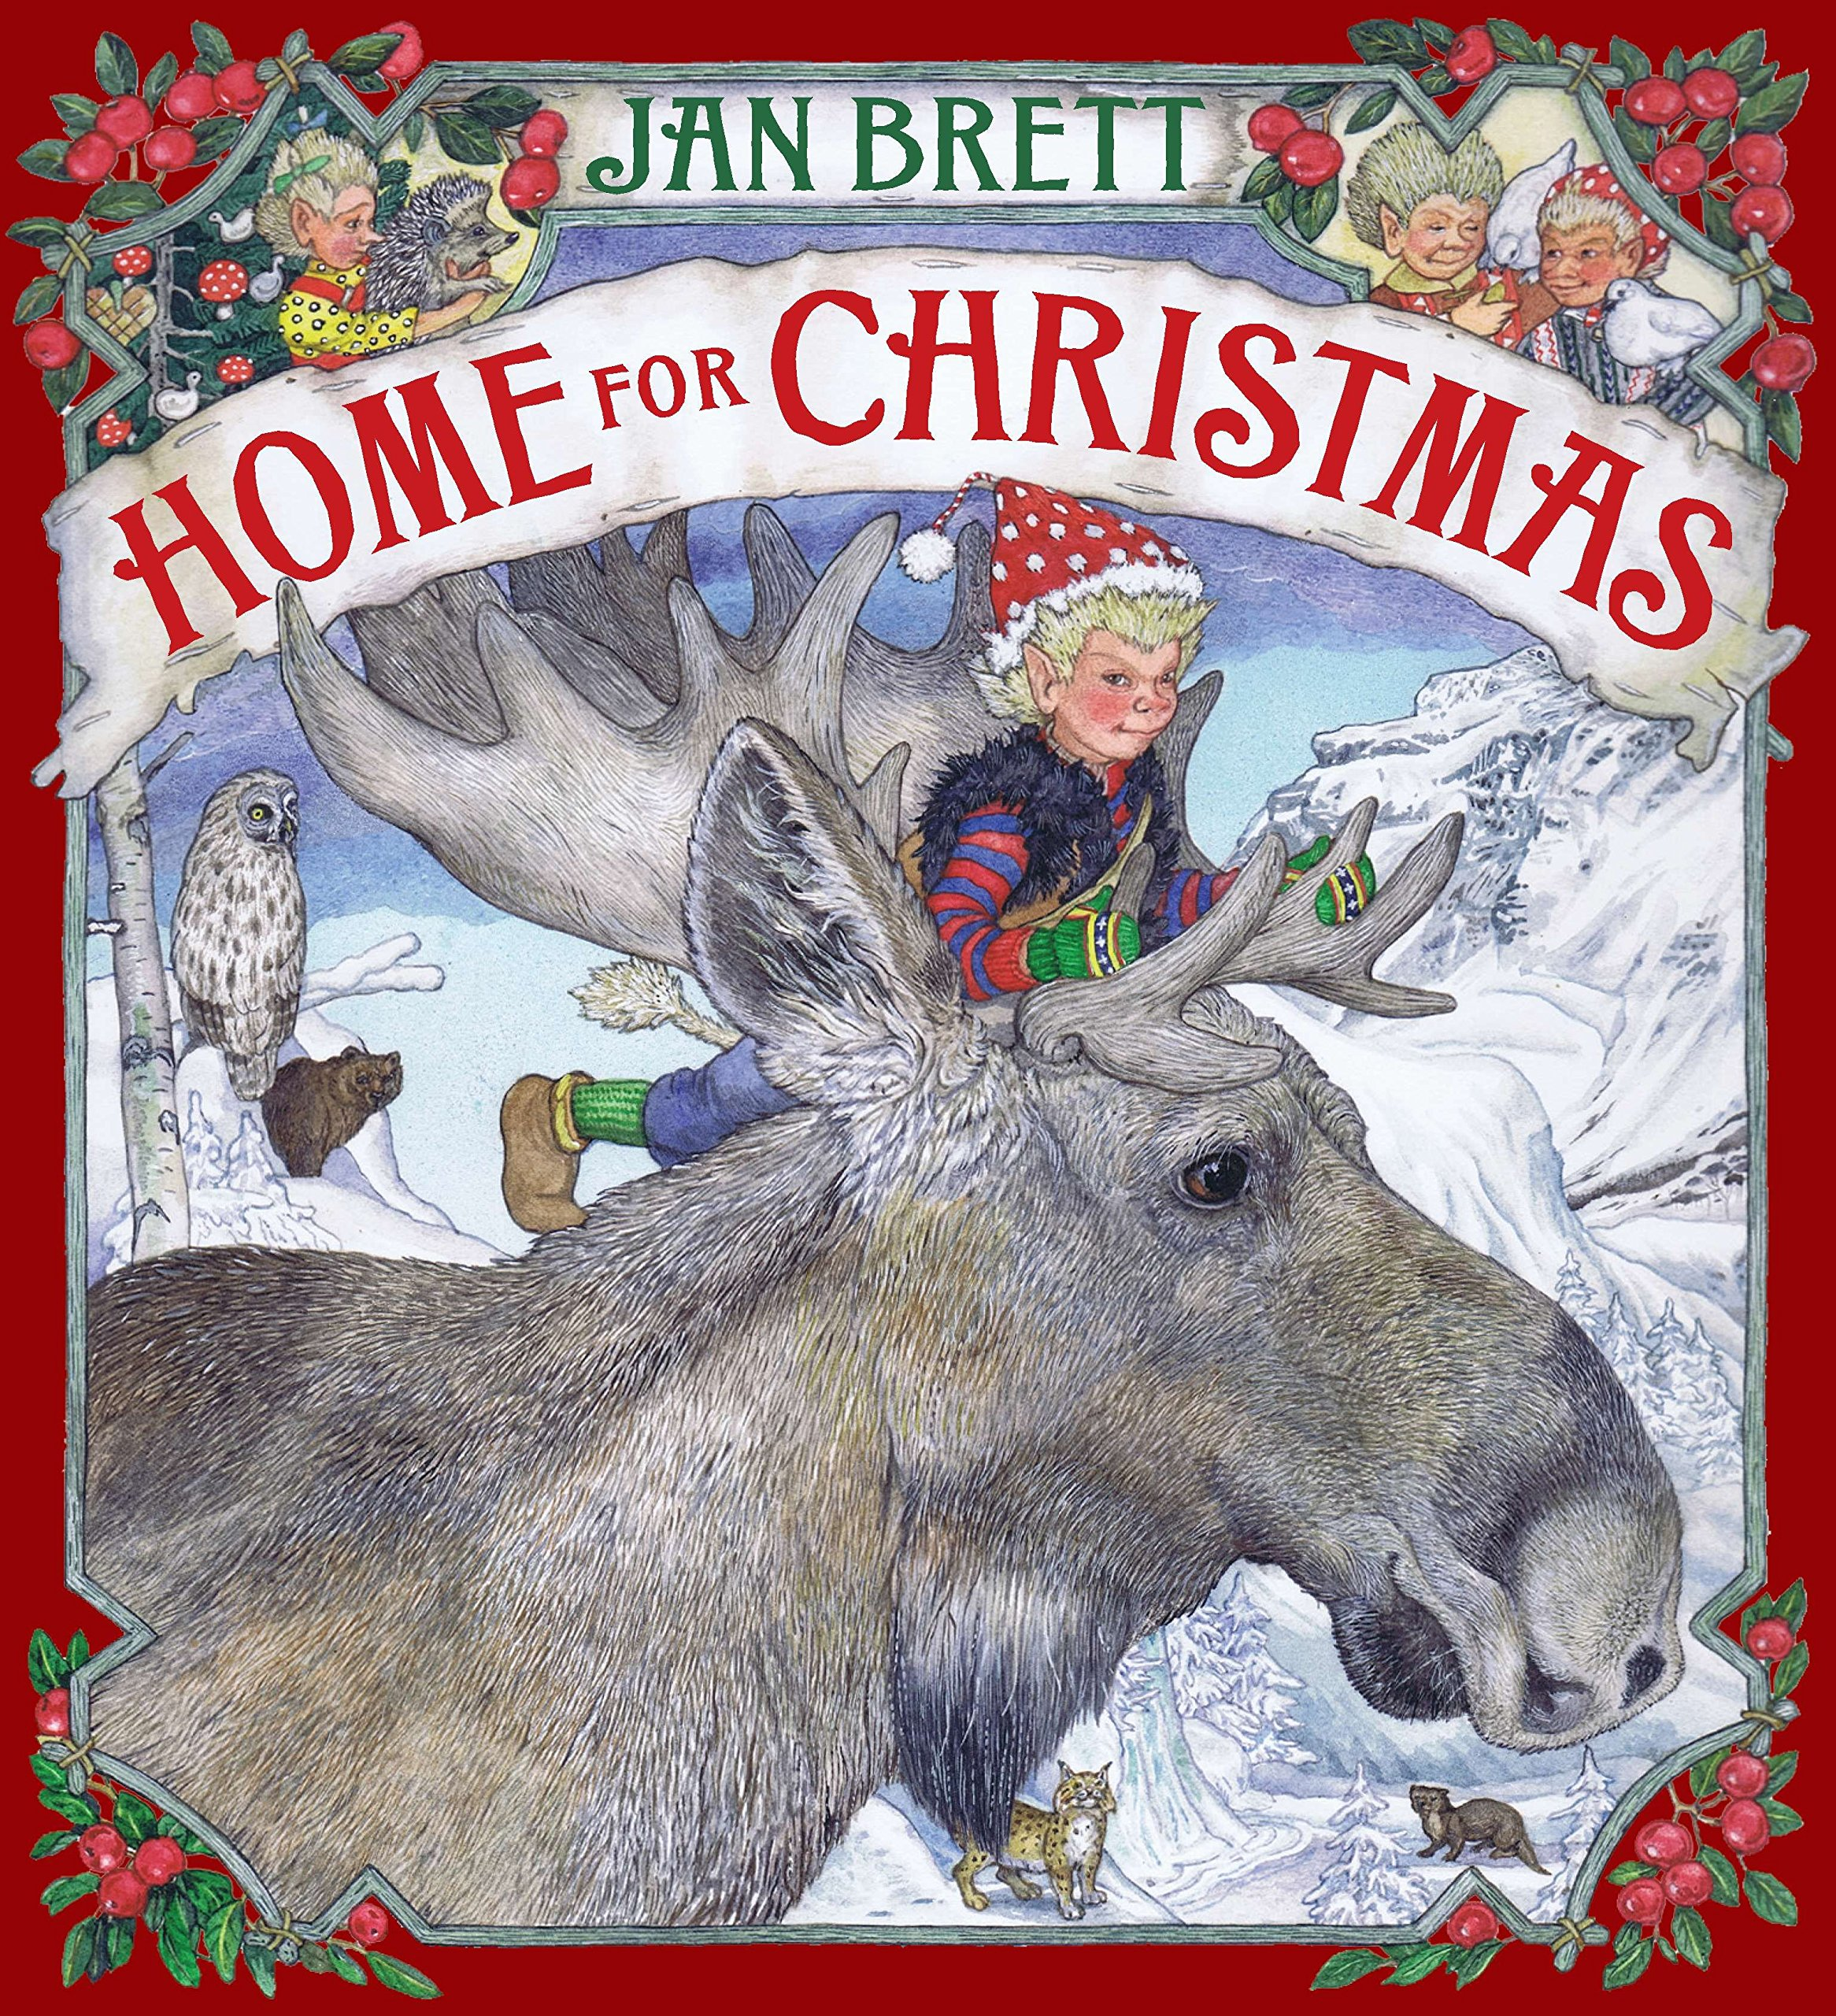 A Home For Christmas.Home For Christmas Jan Brett 9780399256530 Amazon Com Books